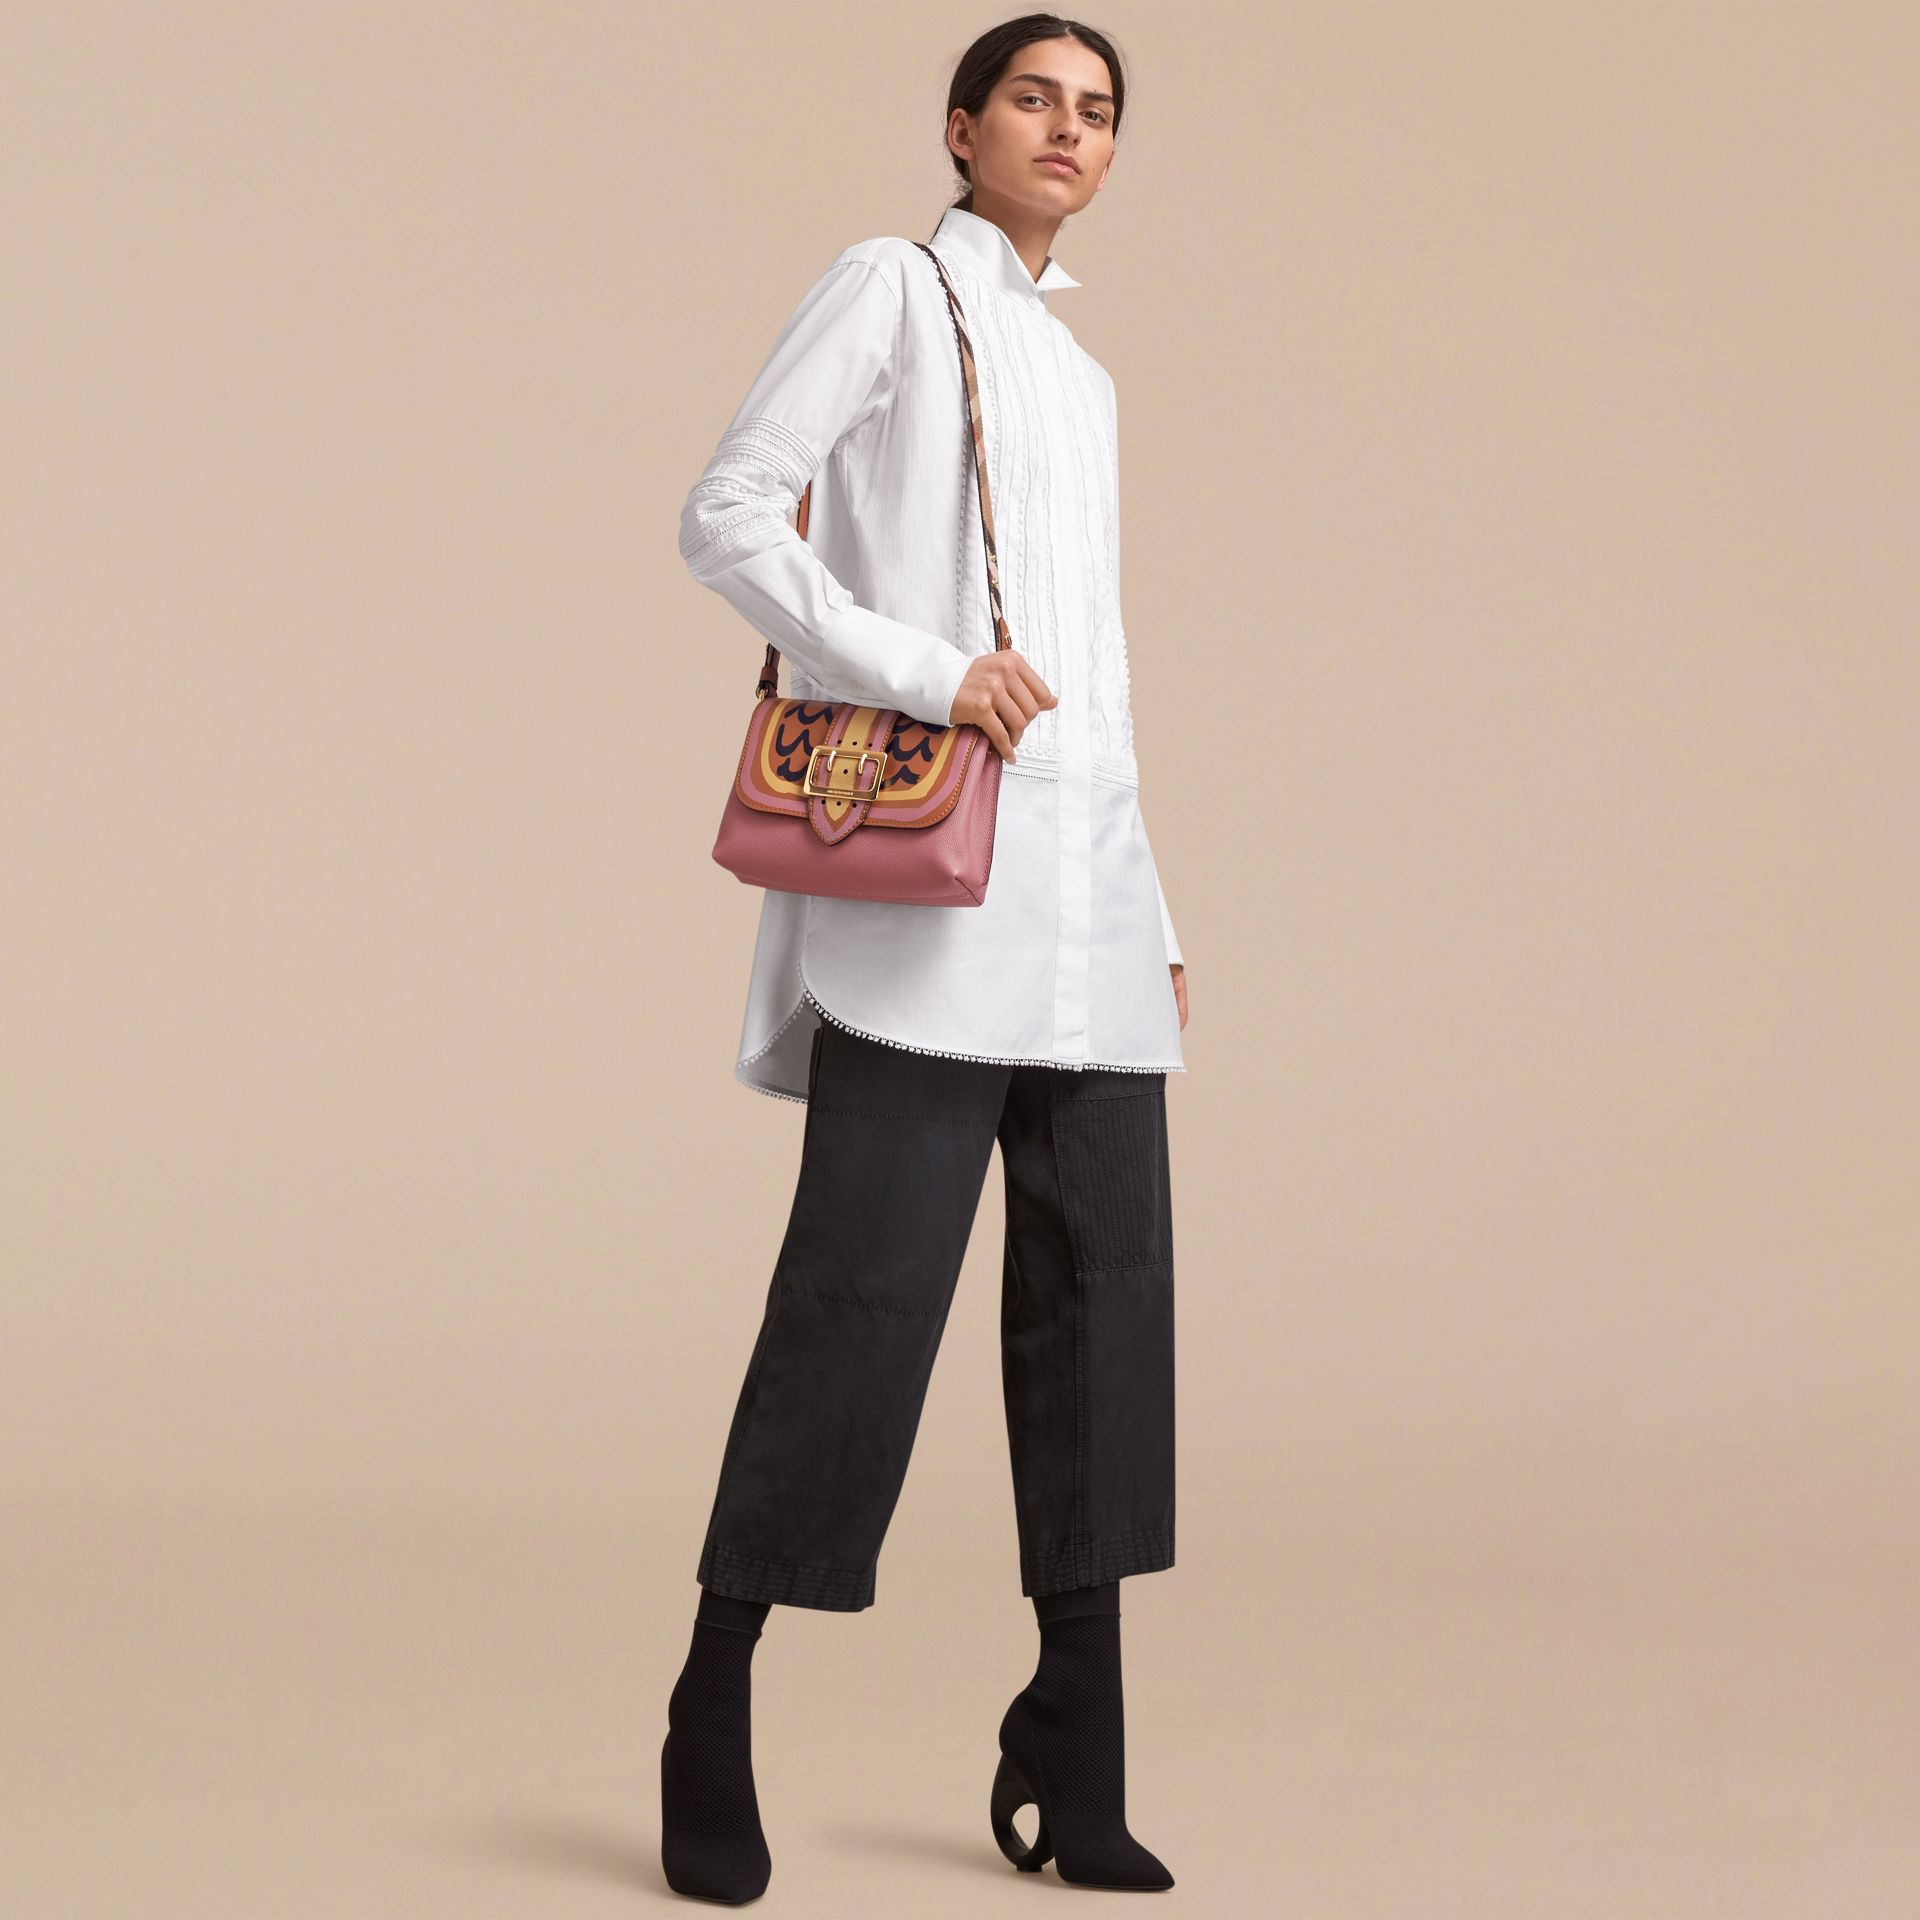 The Buckle Crossbody Bag in Trompe L'oeil Leather Dusty Pink/bright Toffee - gallery image 3